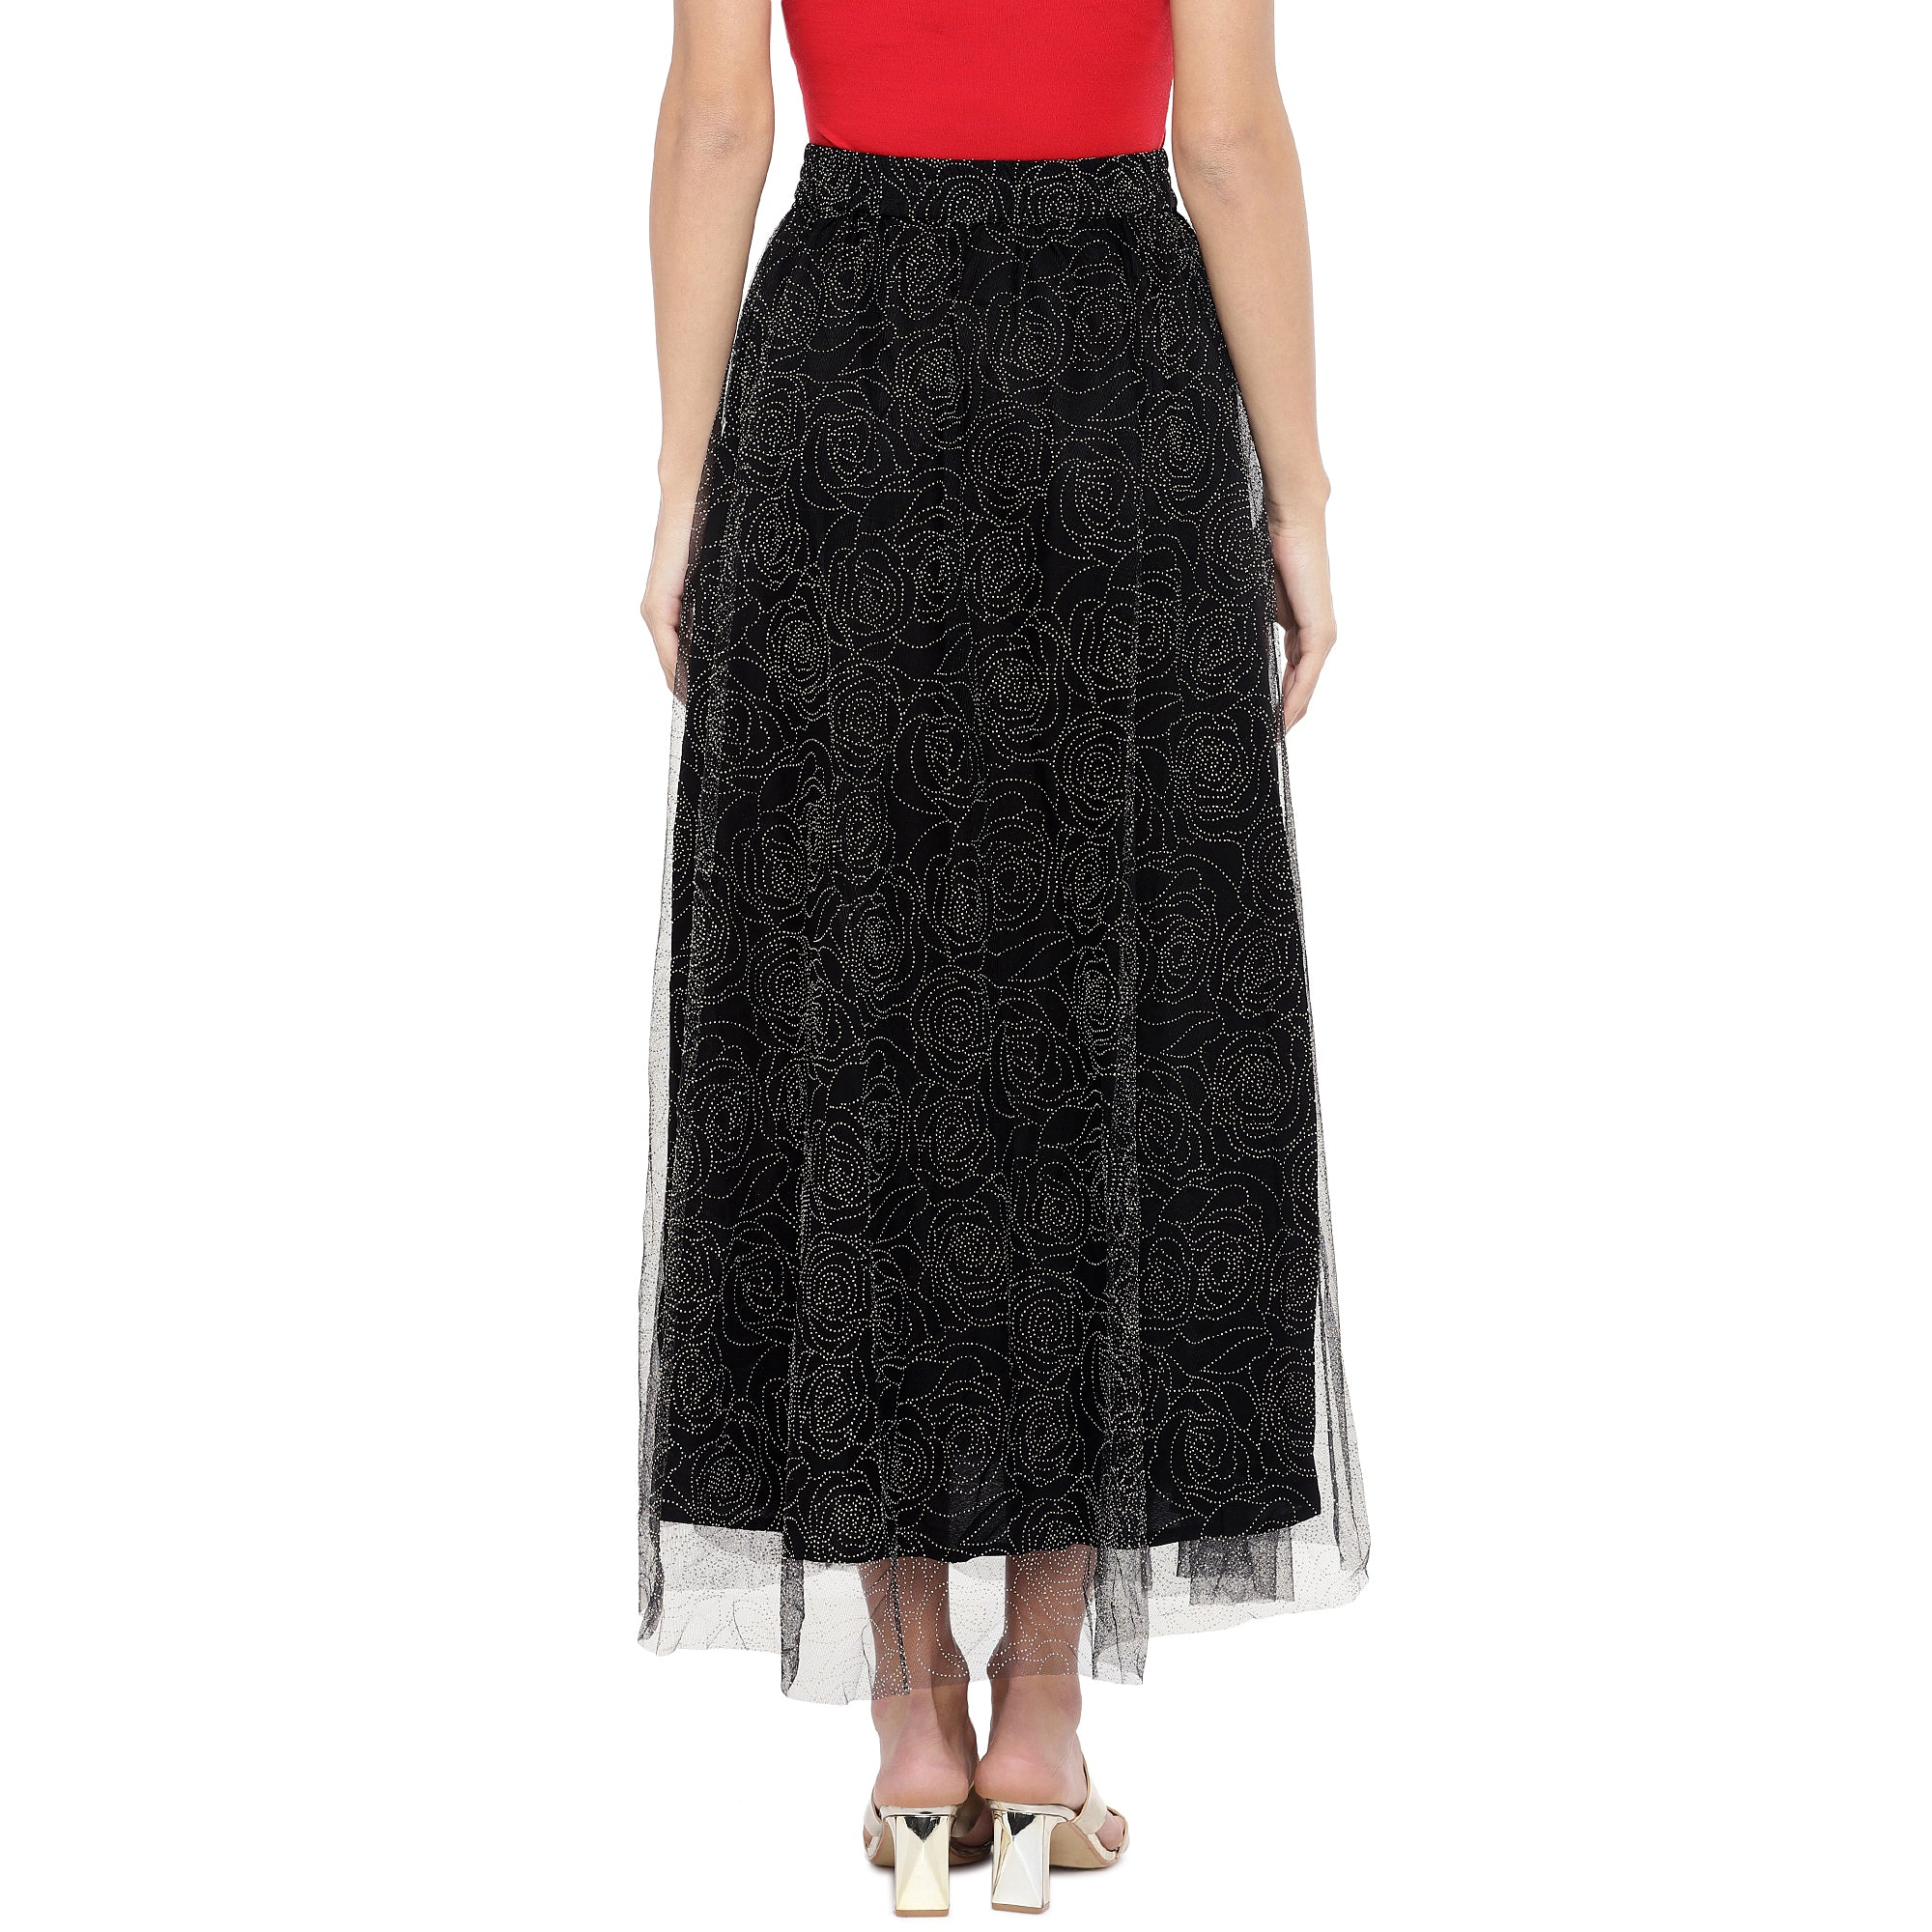 Black Embellished Flared Maxi Ethnic Skirt-3